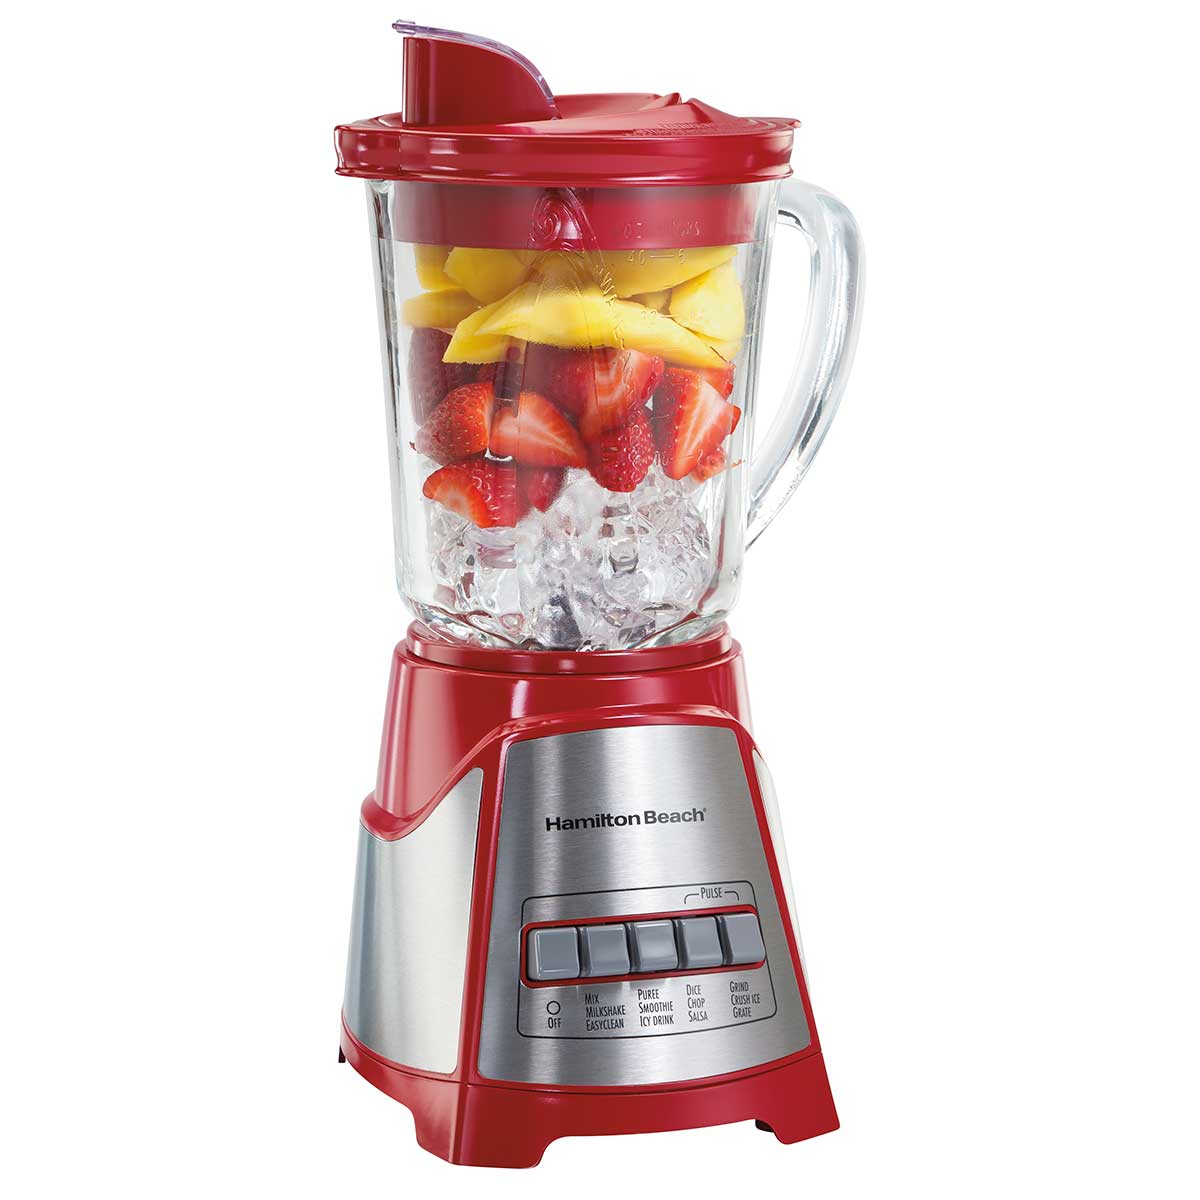 Multi-Function Blender with Mess-free 40oz Glass Jar, 700W Red (58147)